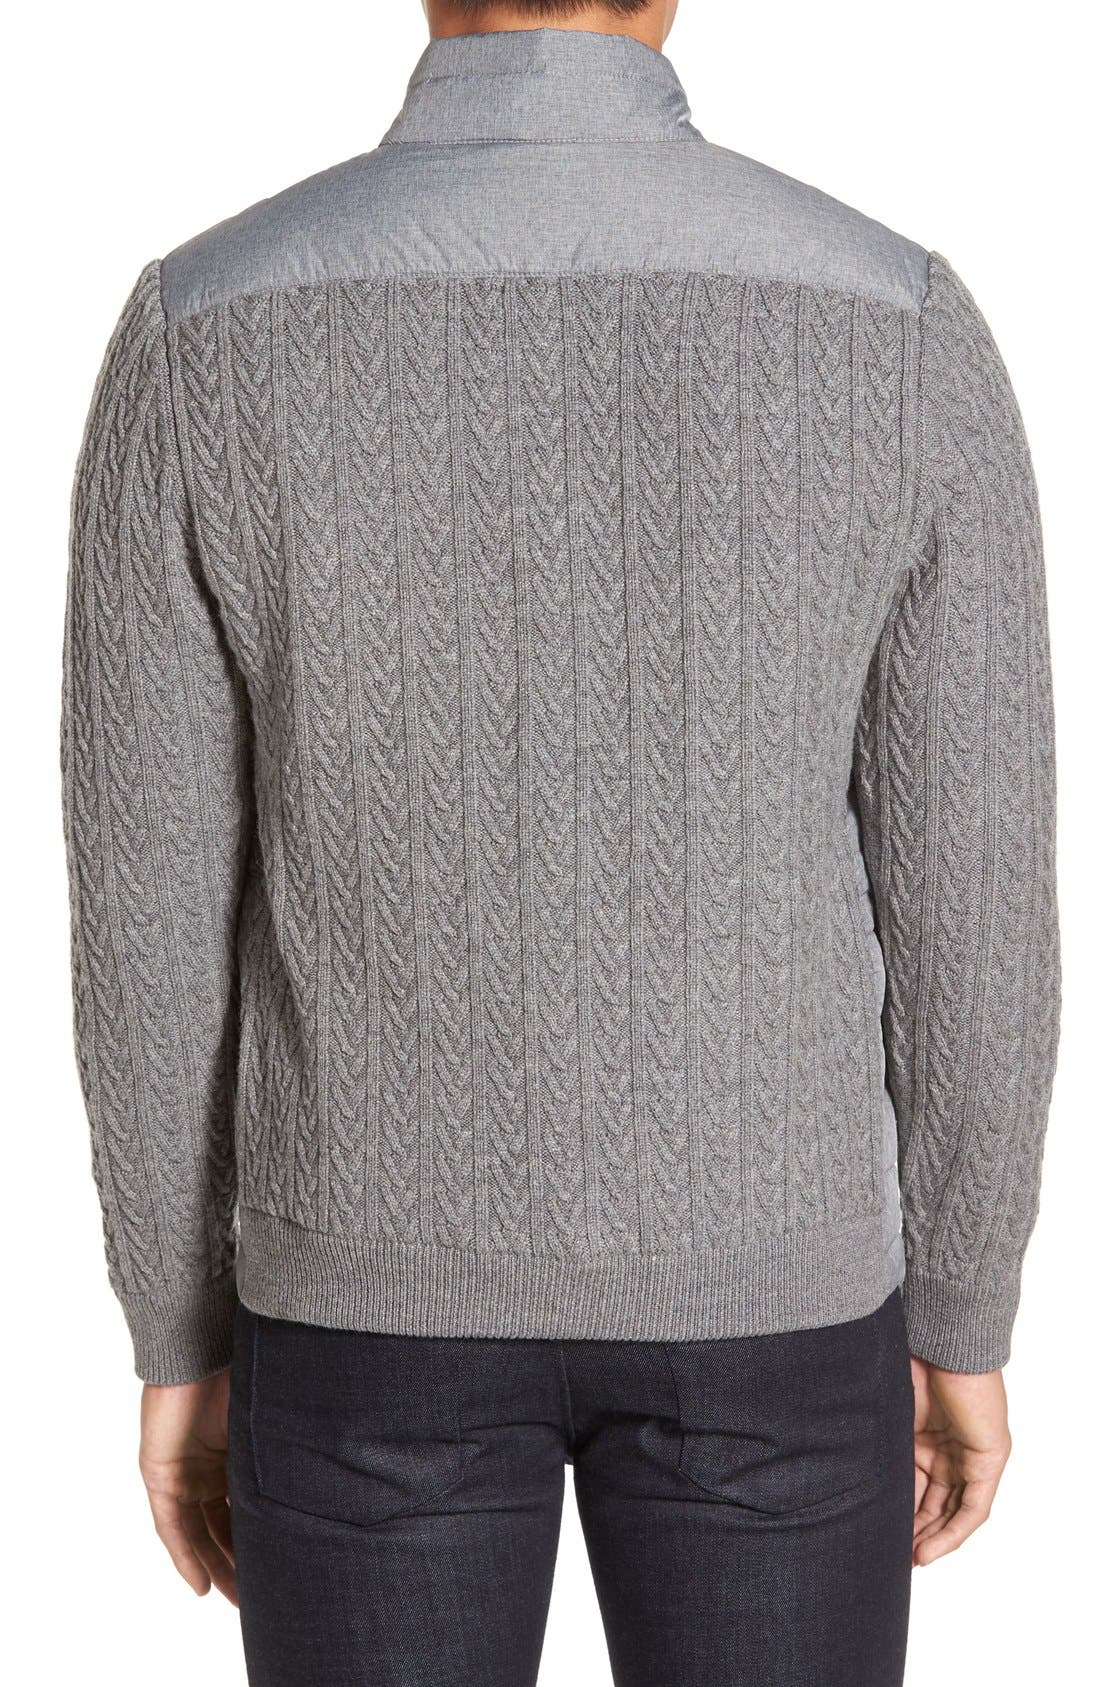 'Beacon' Trim Fit Quilted Cable Knit Zip Sweater,                             Alternate thumbnail 2, color,                             Grey